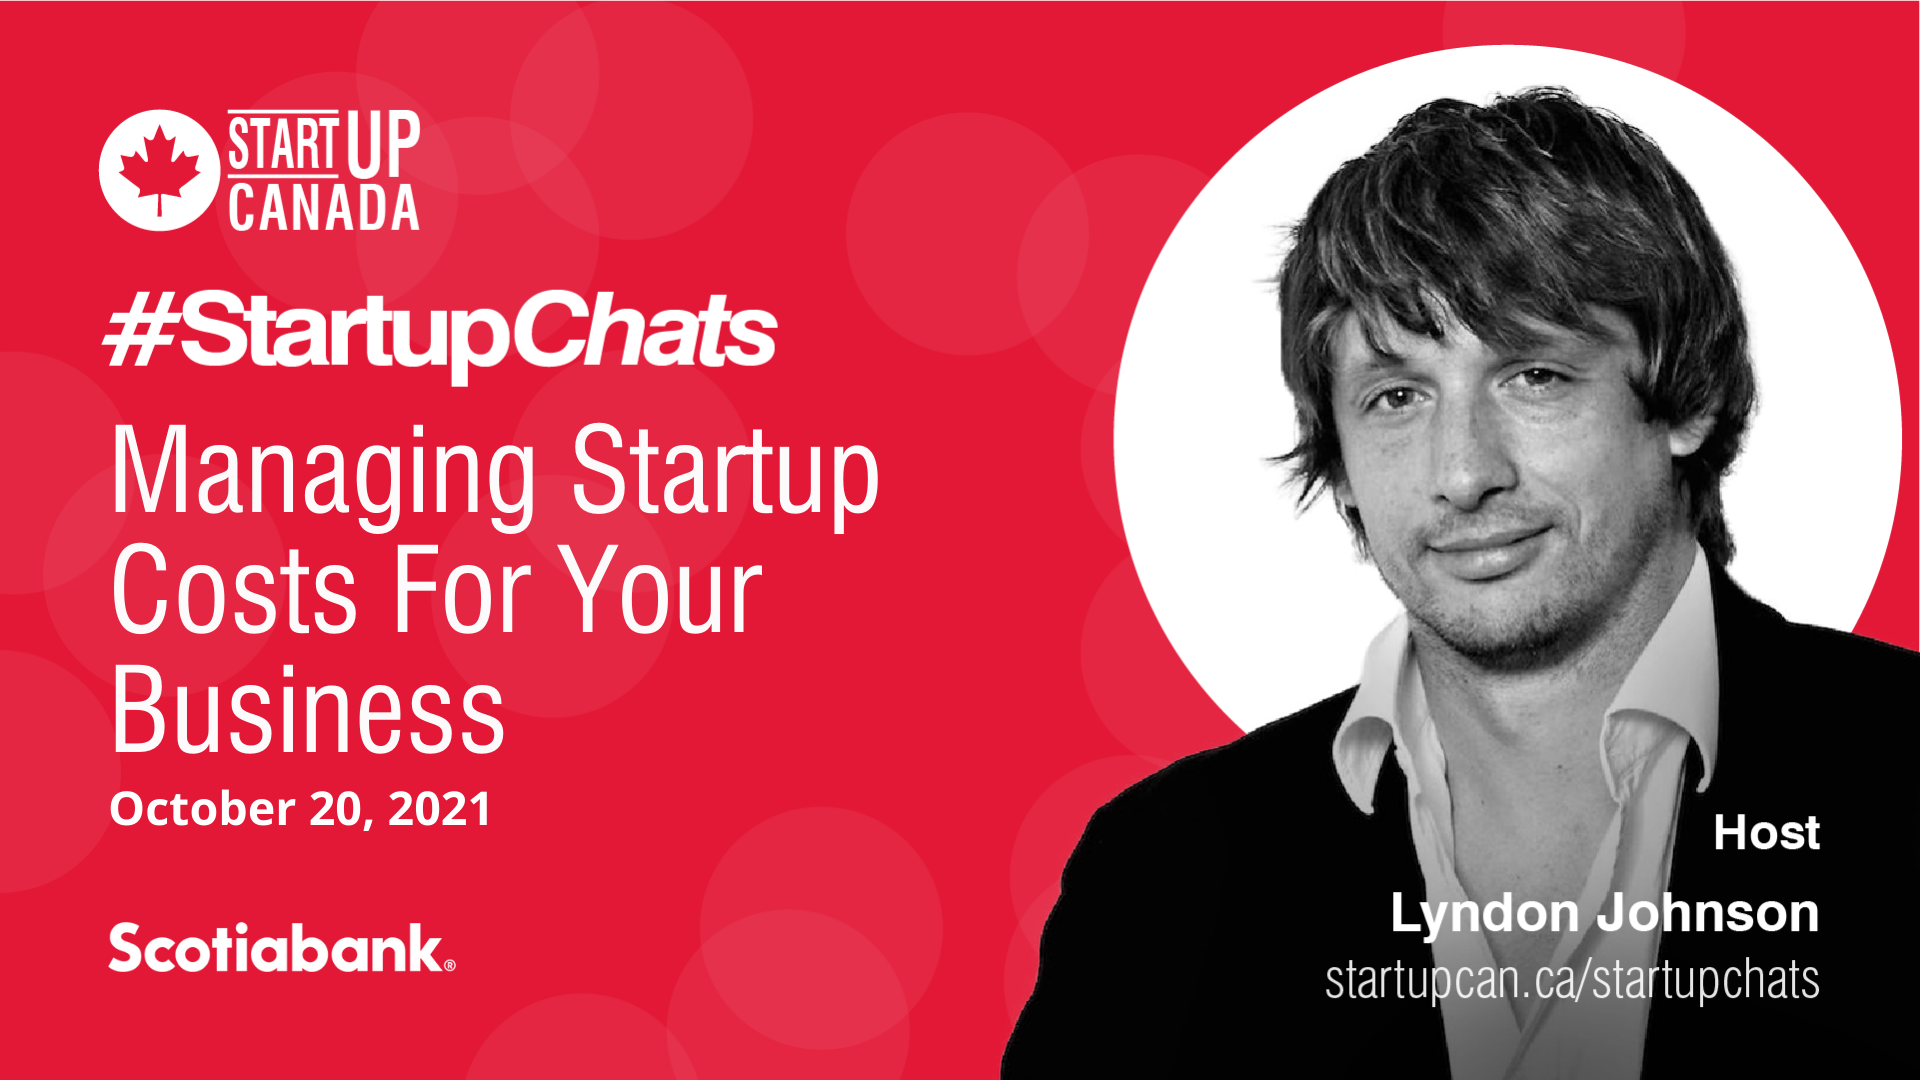 Photo of Startup Chats Host and title that reads Managing Startup Costs For Your Business